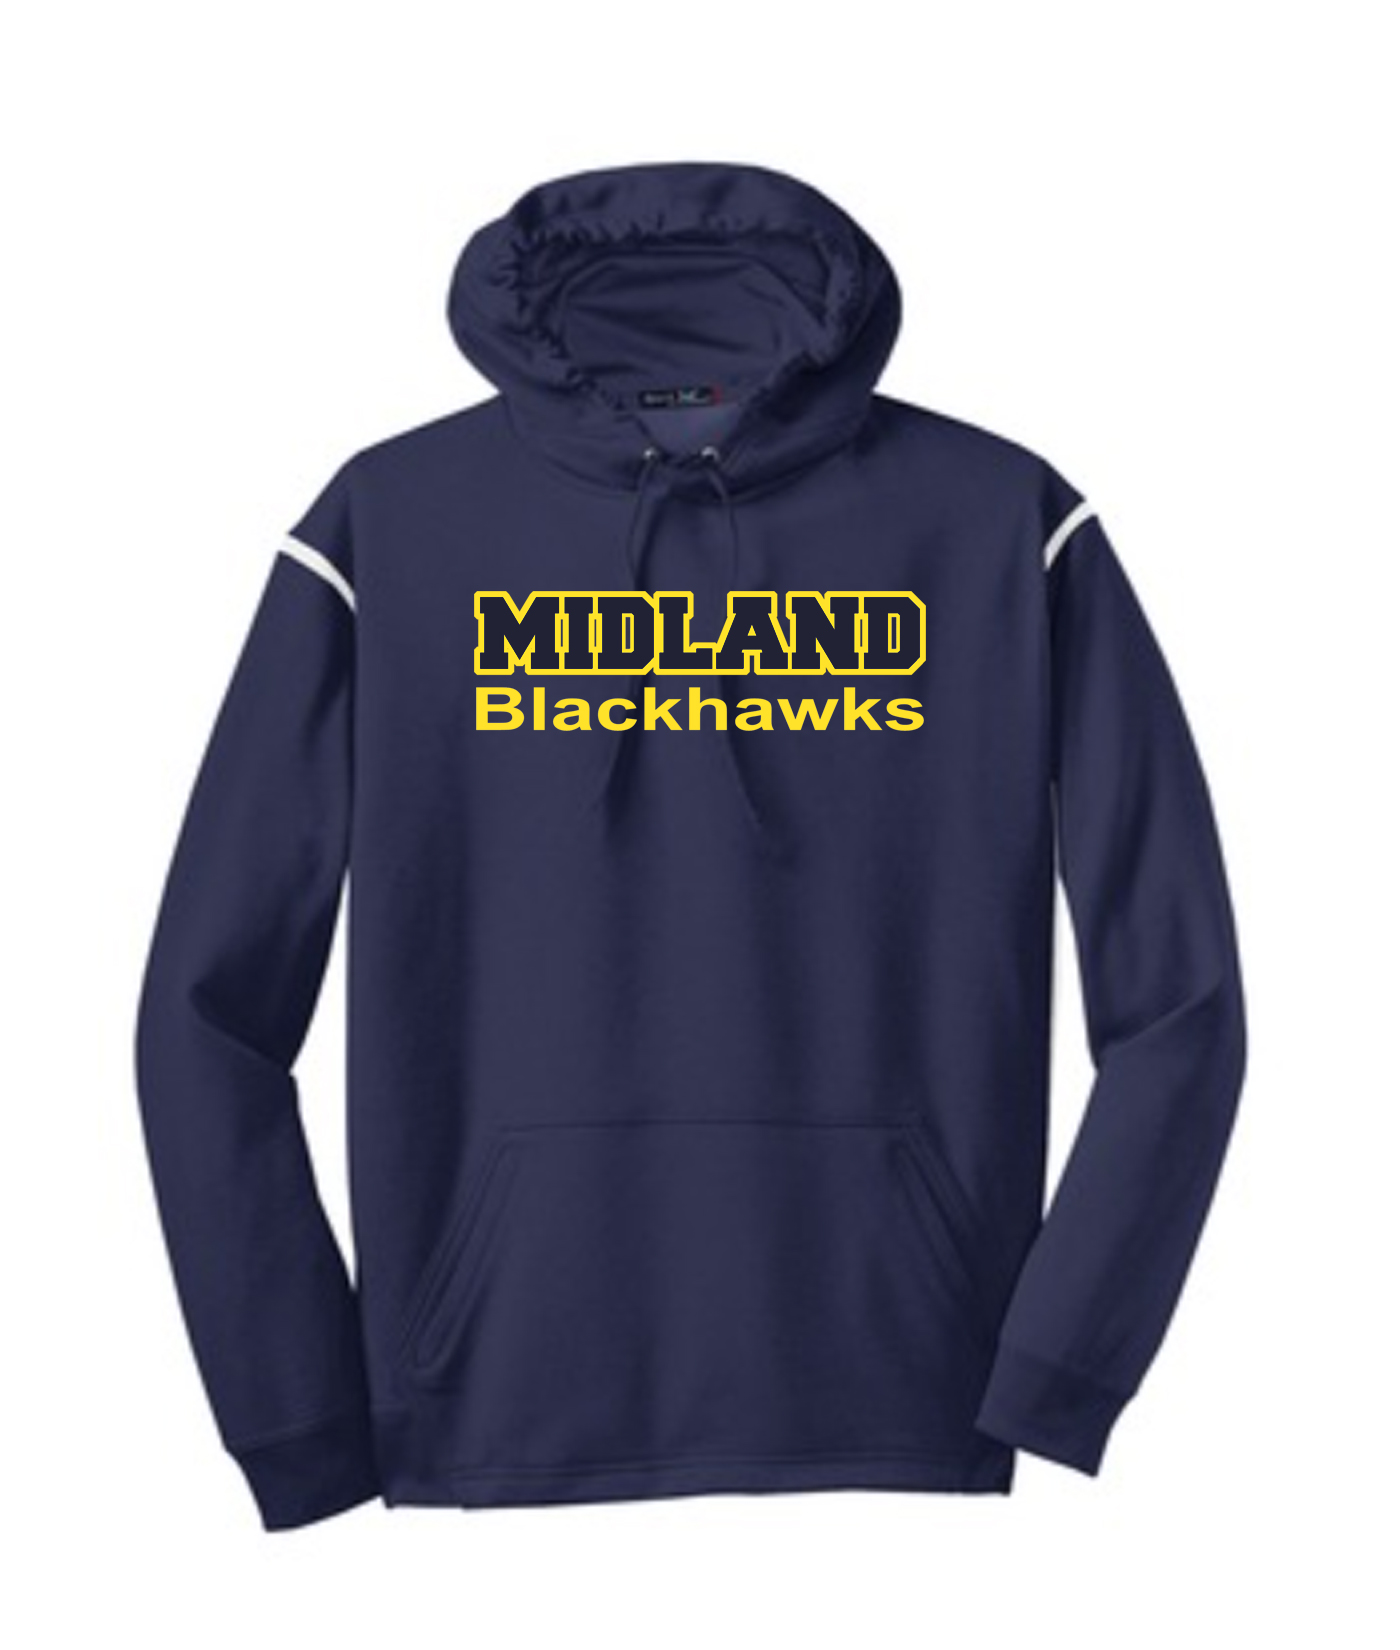 Sport-Tek Navy Tech Fleece Colorblock Hooded Sweatshirt Color Midland Blackhawks Gold Outline Navy Inside